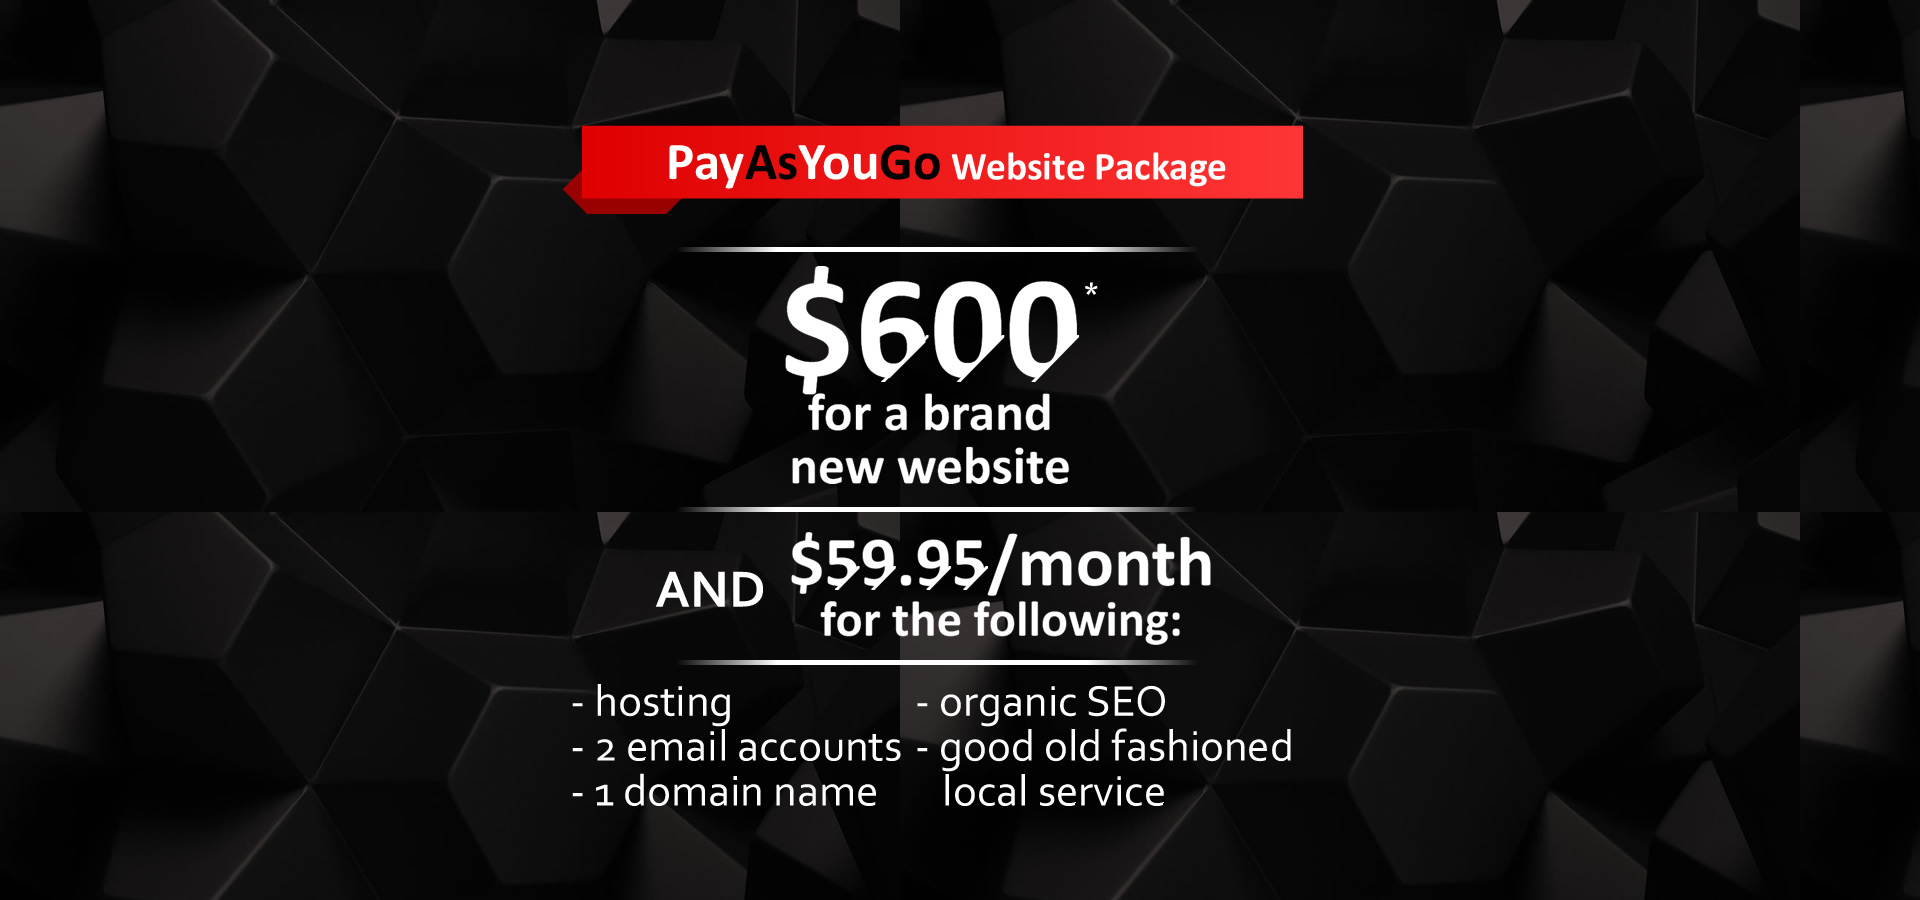 PAYG Website Package